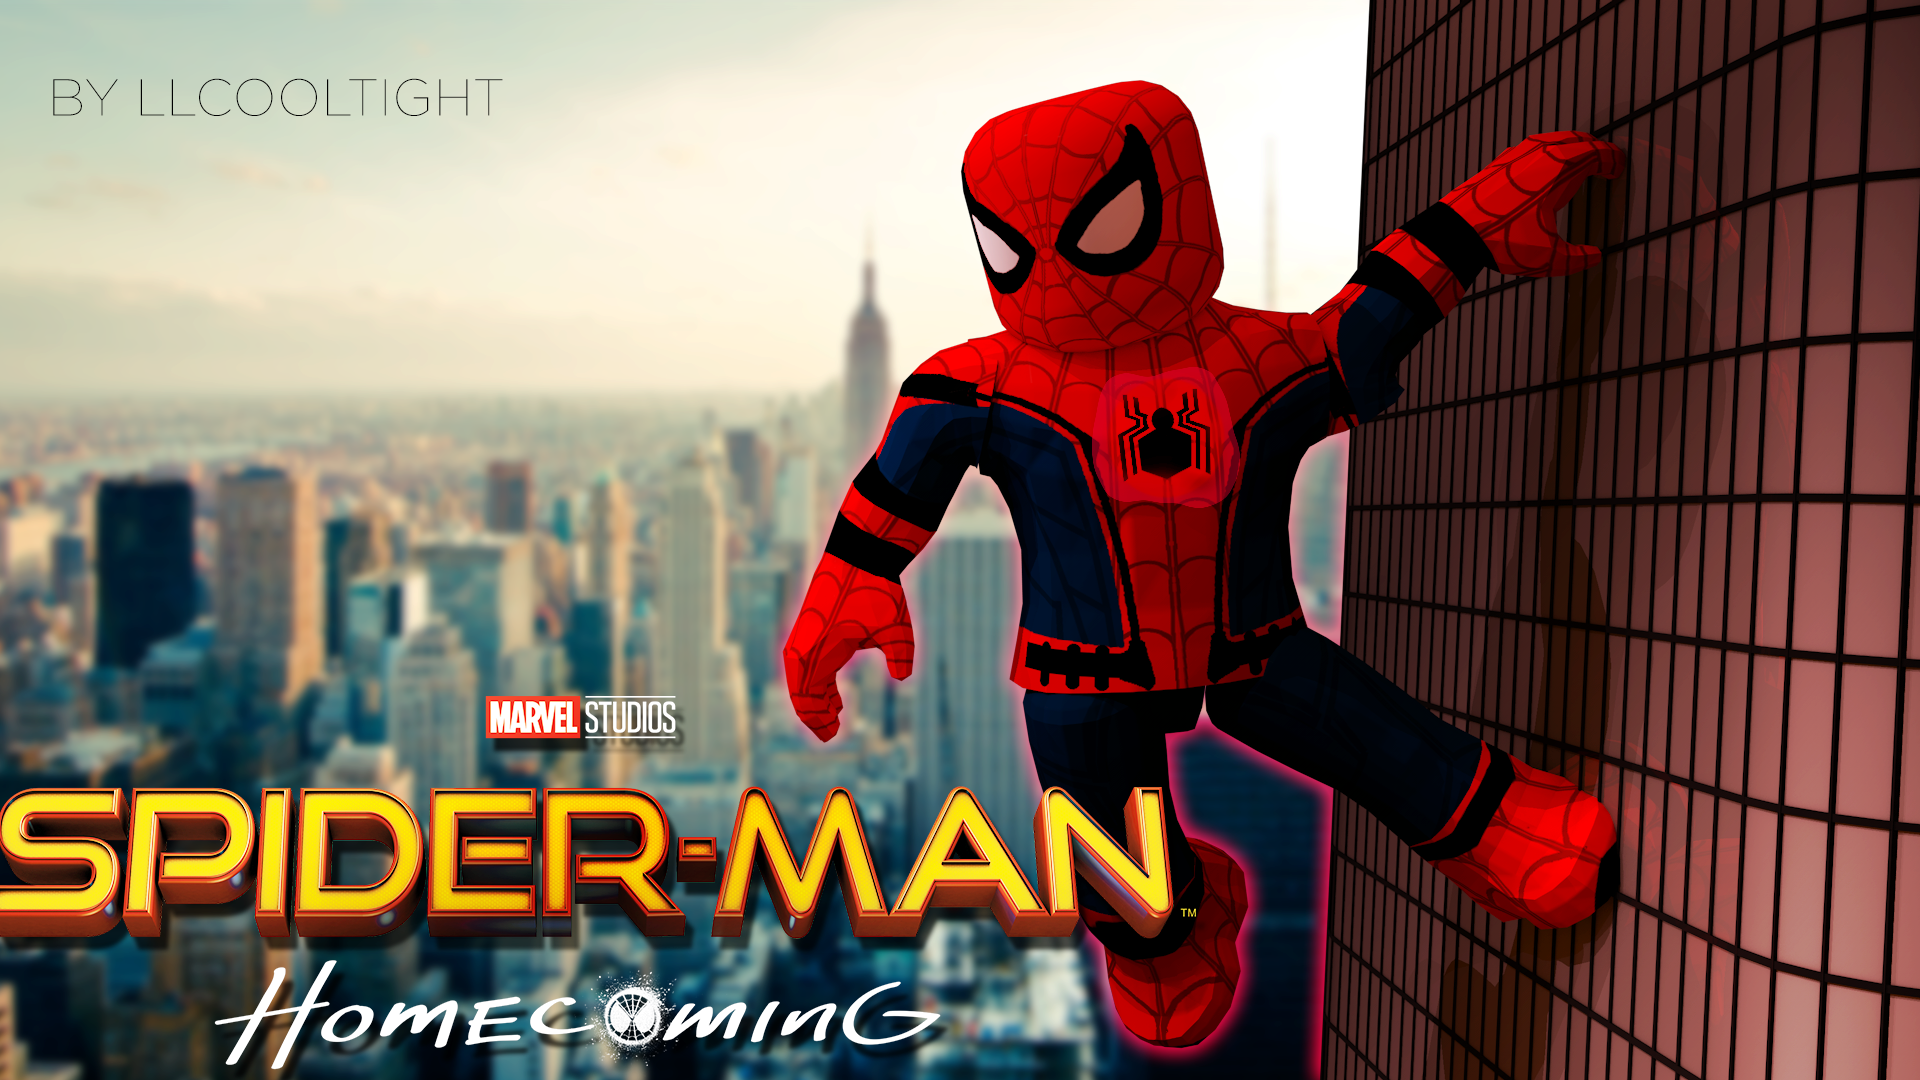 Spider Roblox Avatar Roblox Gfx By Llcooltight Spider Man Homecoming By Llcooltight On Deviantart